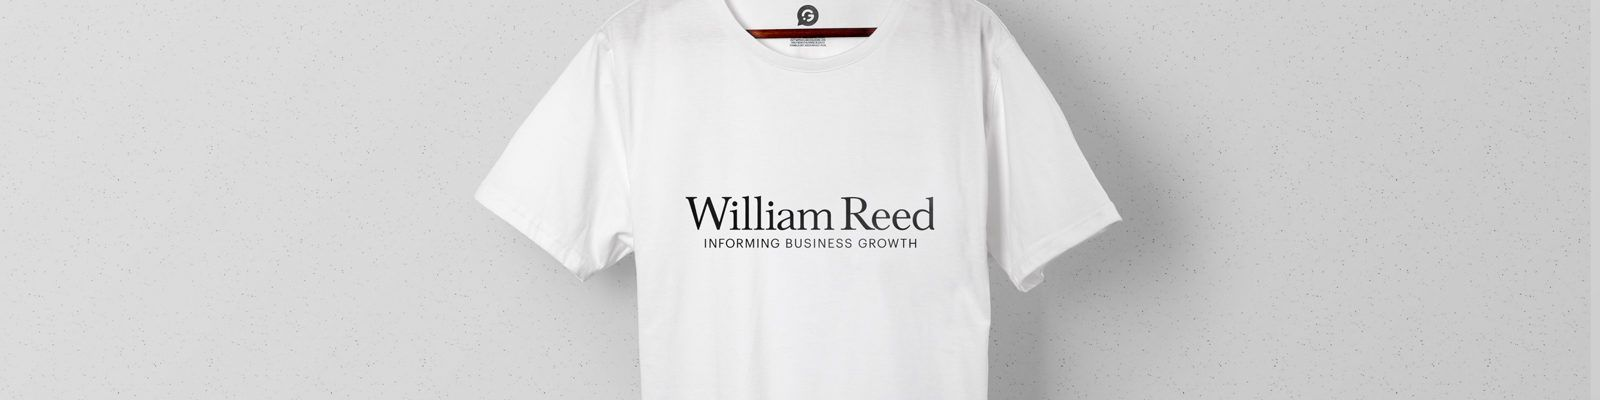 Printed T-Shirts Get William Reed Noticed at Downing Street - Header Image